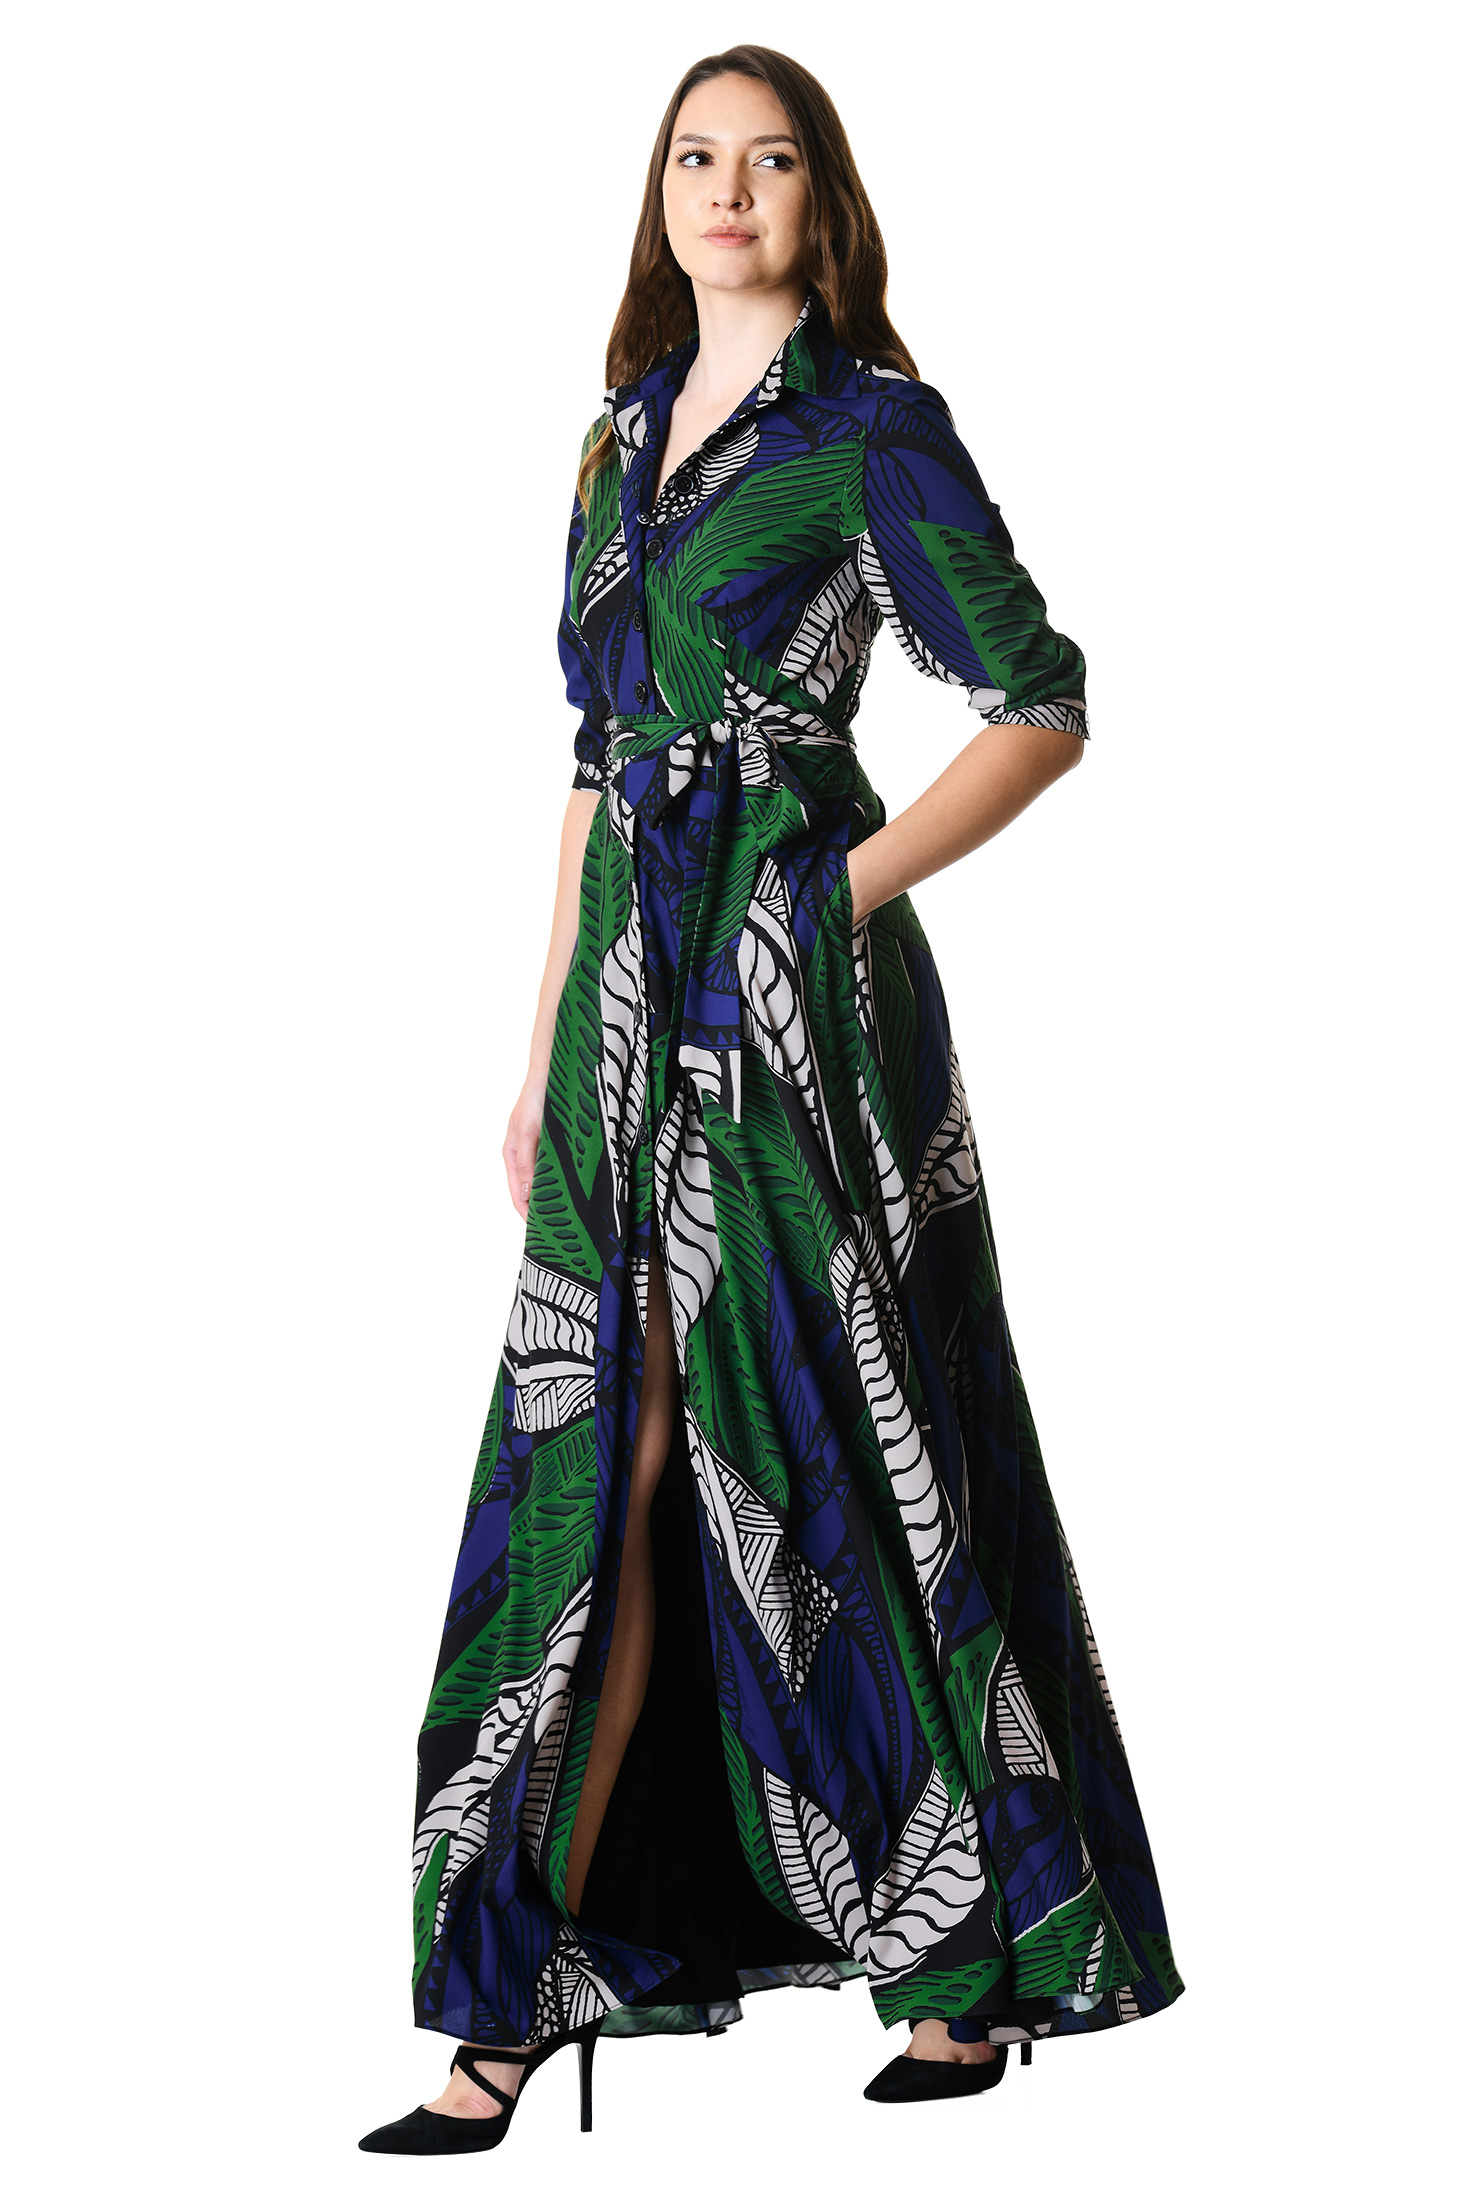 , ABSTRACTS AND GRAPHICS, day dresses, Fall dresses, Fit and flare dresses, maxi dresses, print dresses, retro modern dresses, shirtdresses